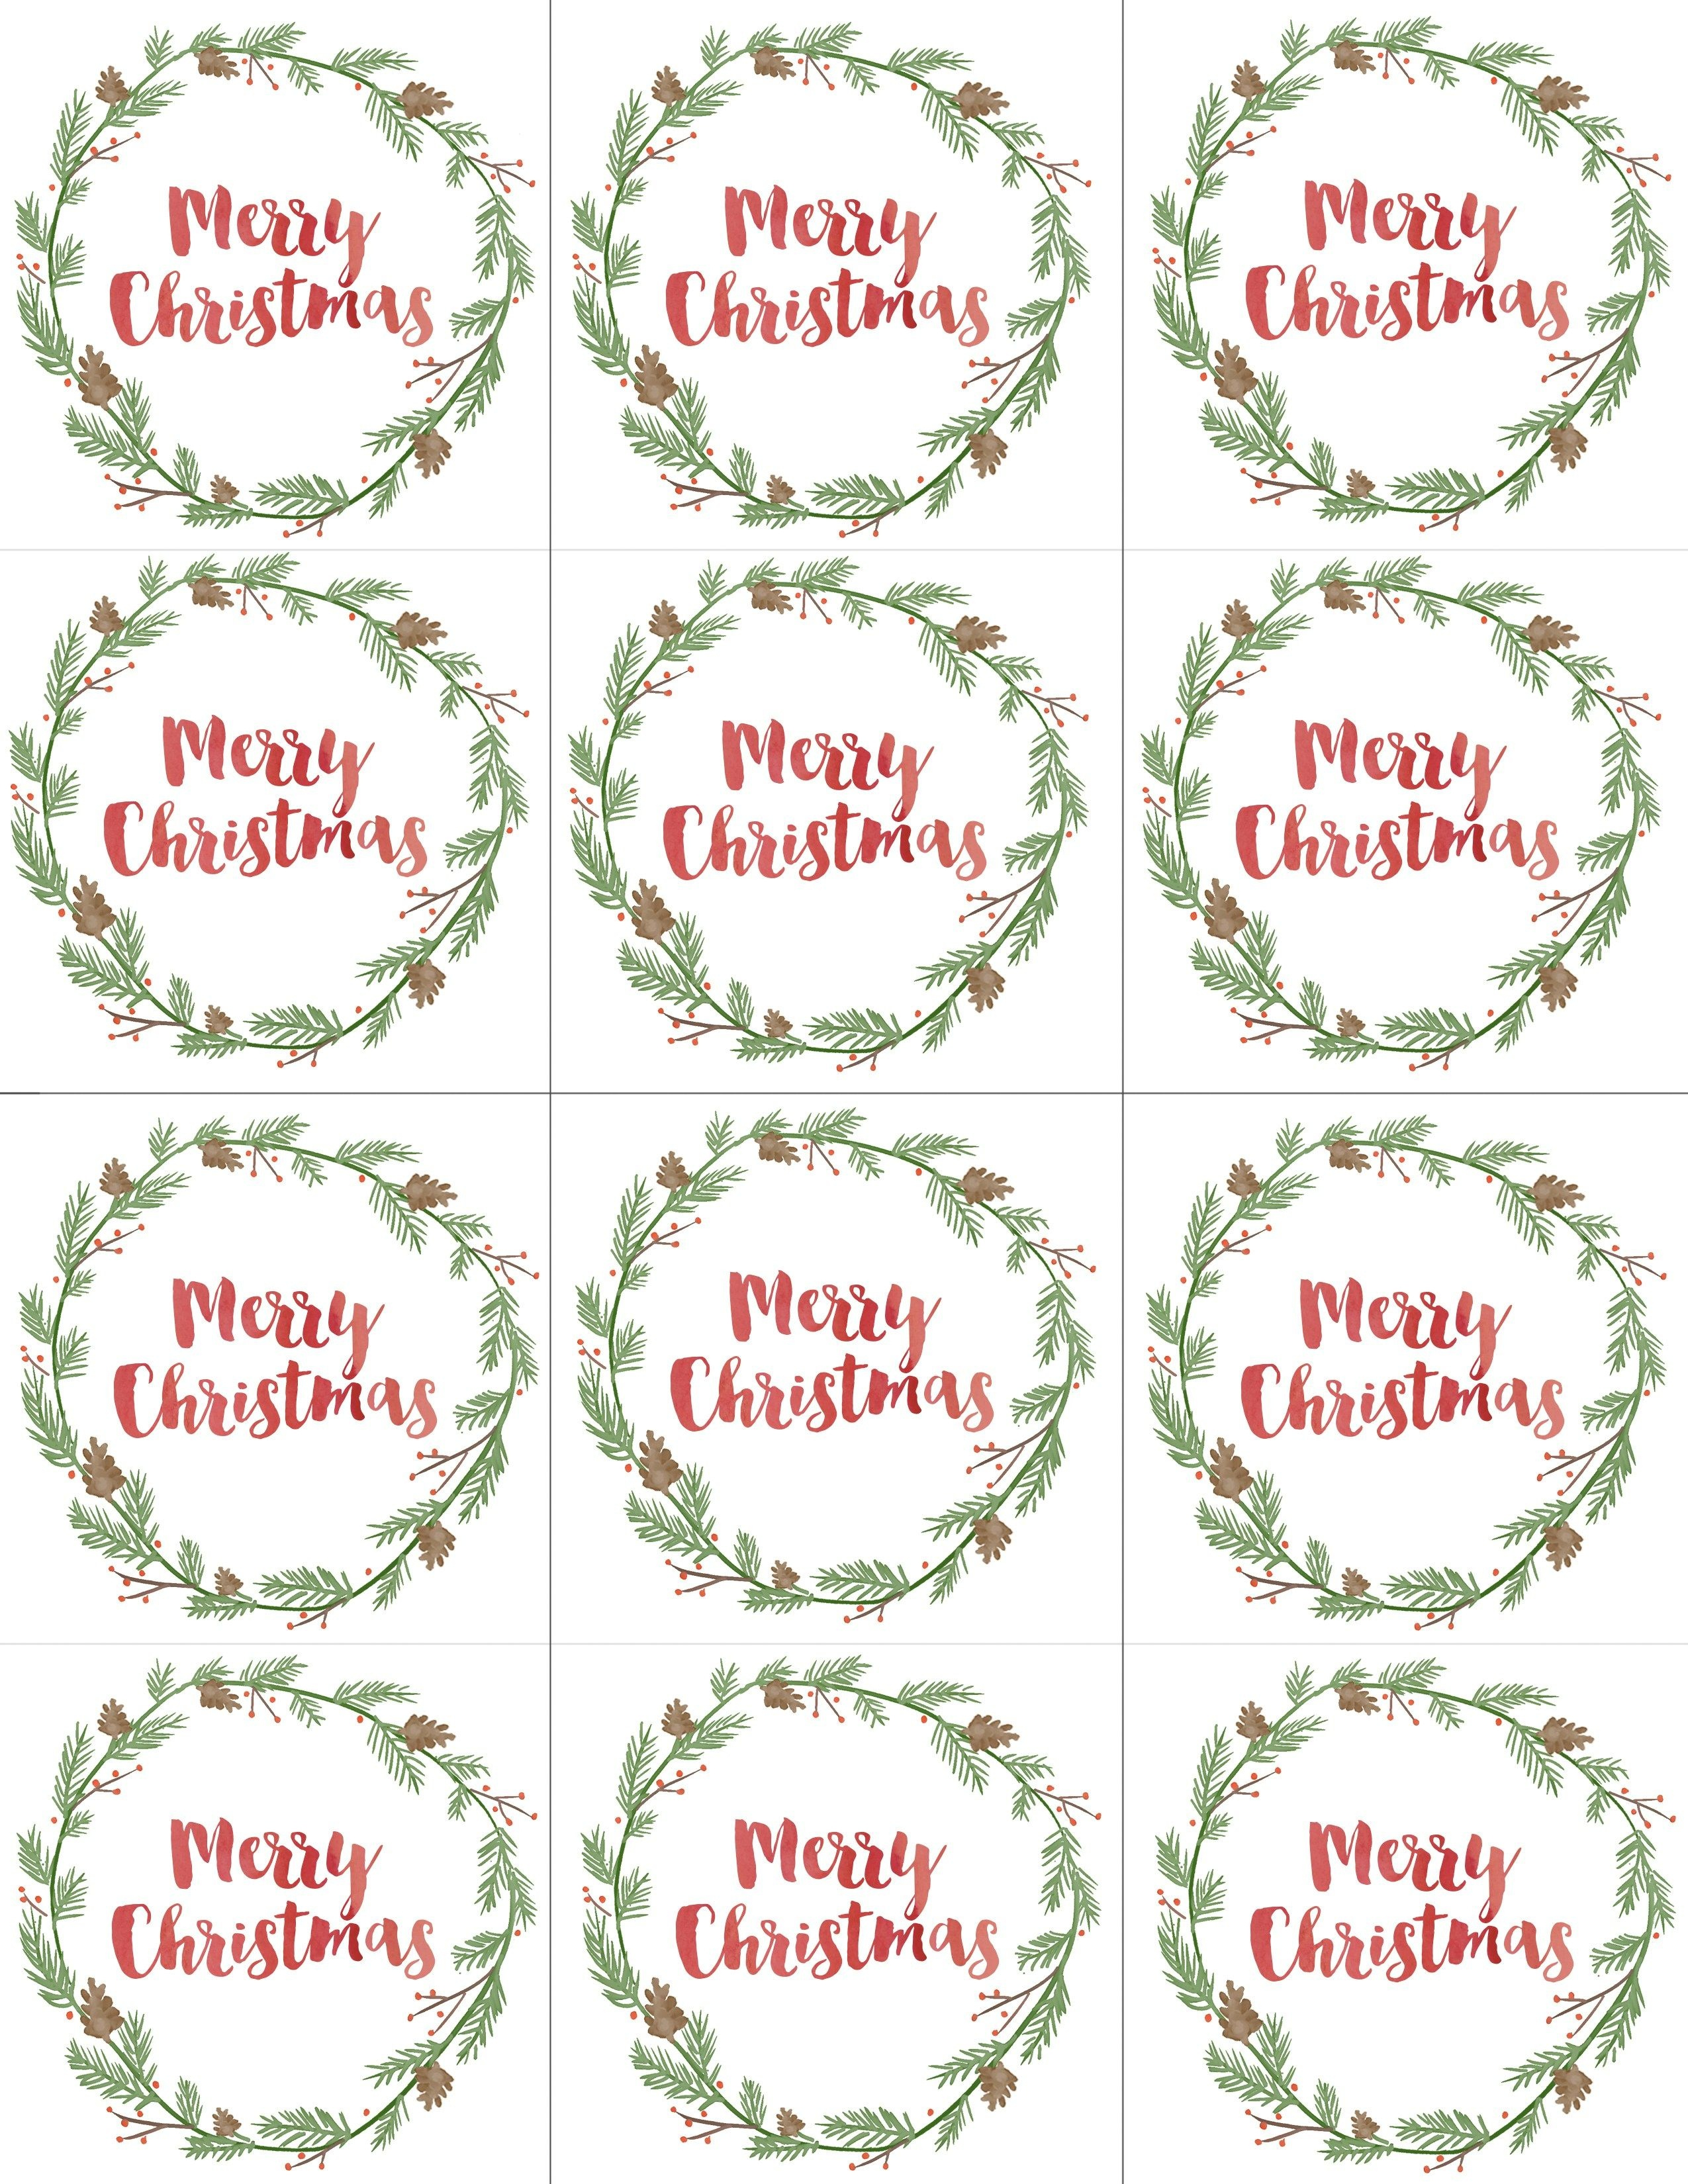 Hand Painted Gift Tags Free Printable | Christmas | Christmas Gift - Printable Gift Tags Customized Free